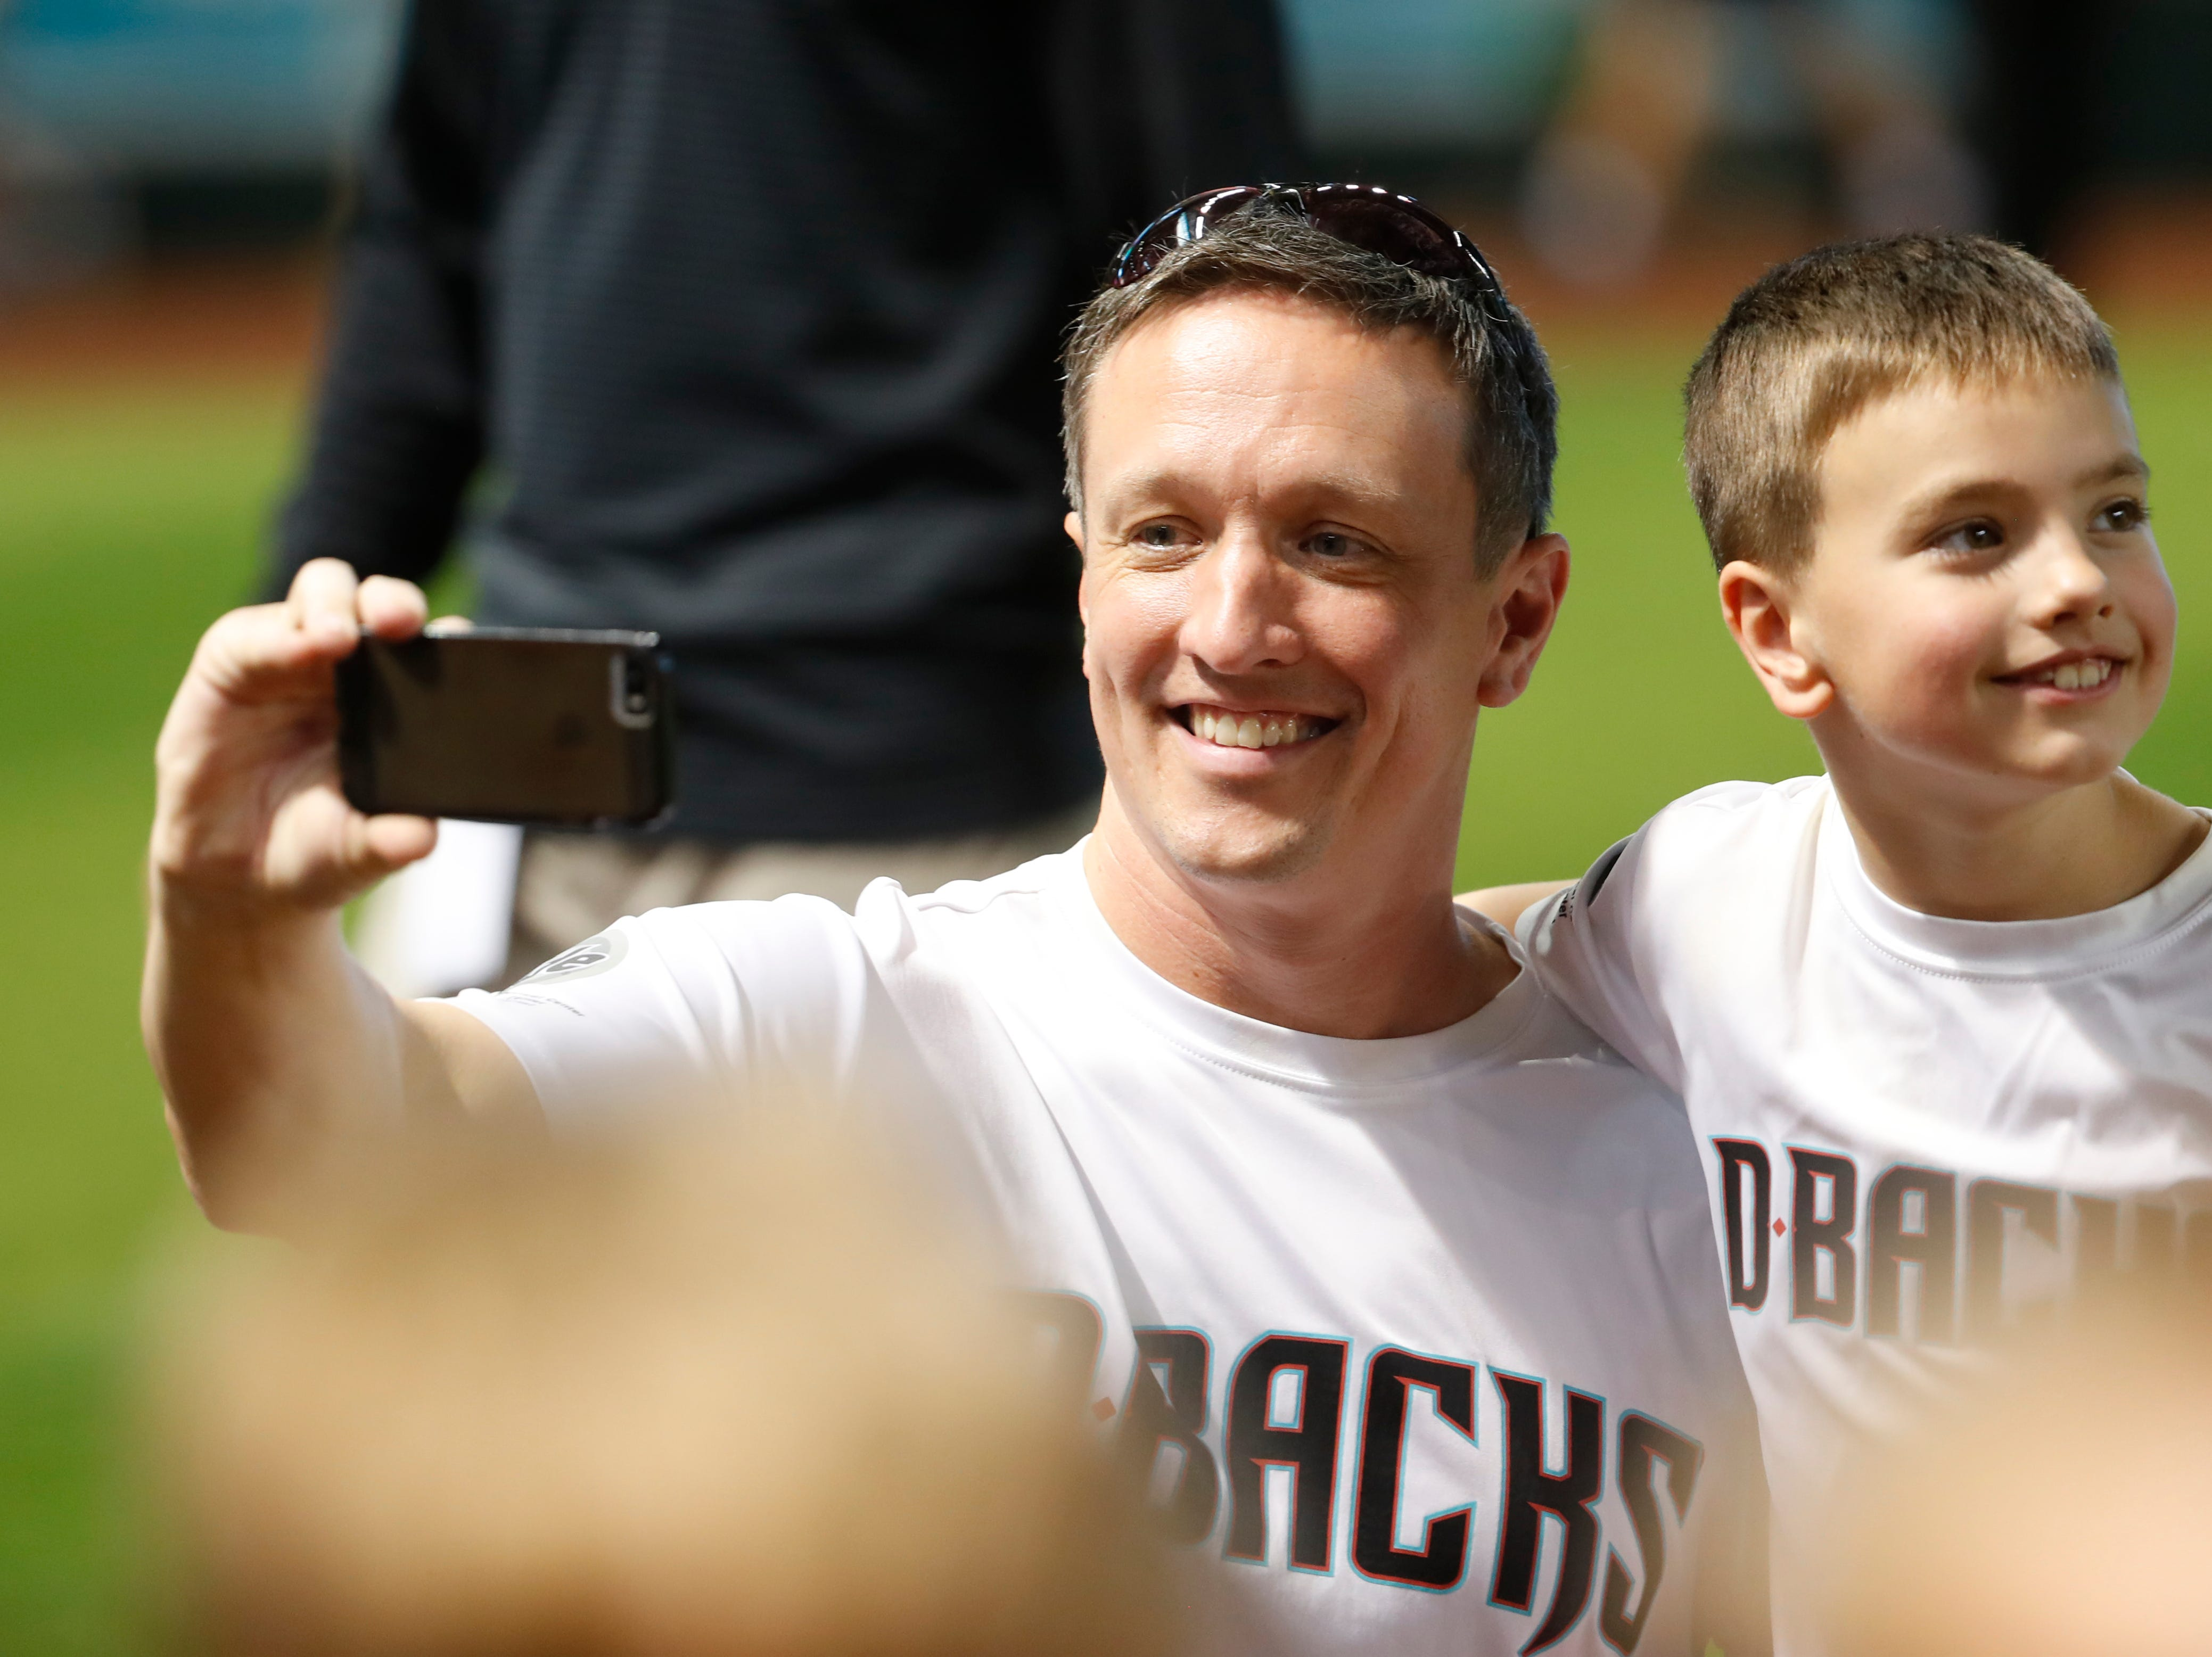 Fans take selfies on the field during the Arizona All-Stars Parade before a Cubs vs. Diamondbacks game at Chase Field in Phoenix, Ariz. on April 26, 2019.